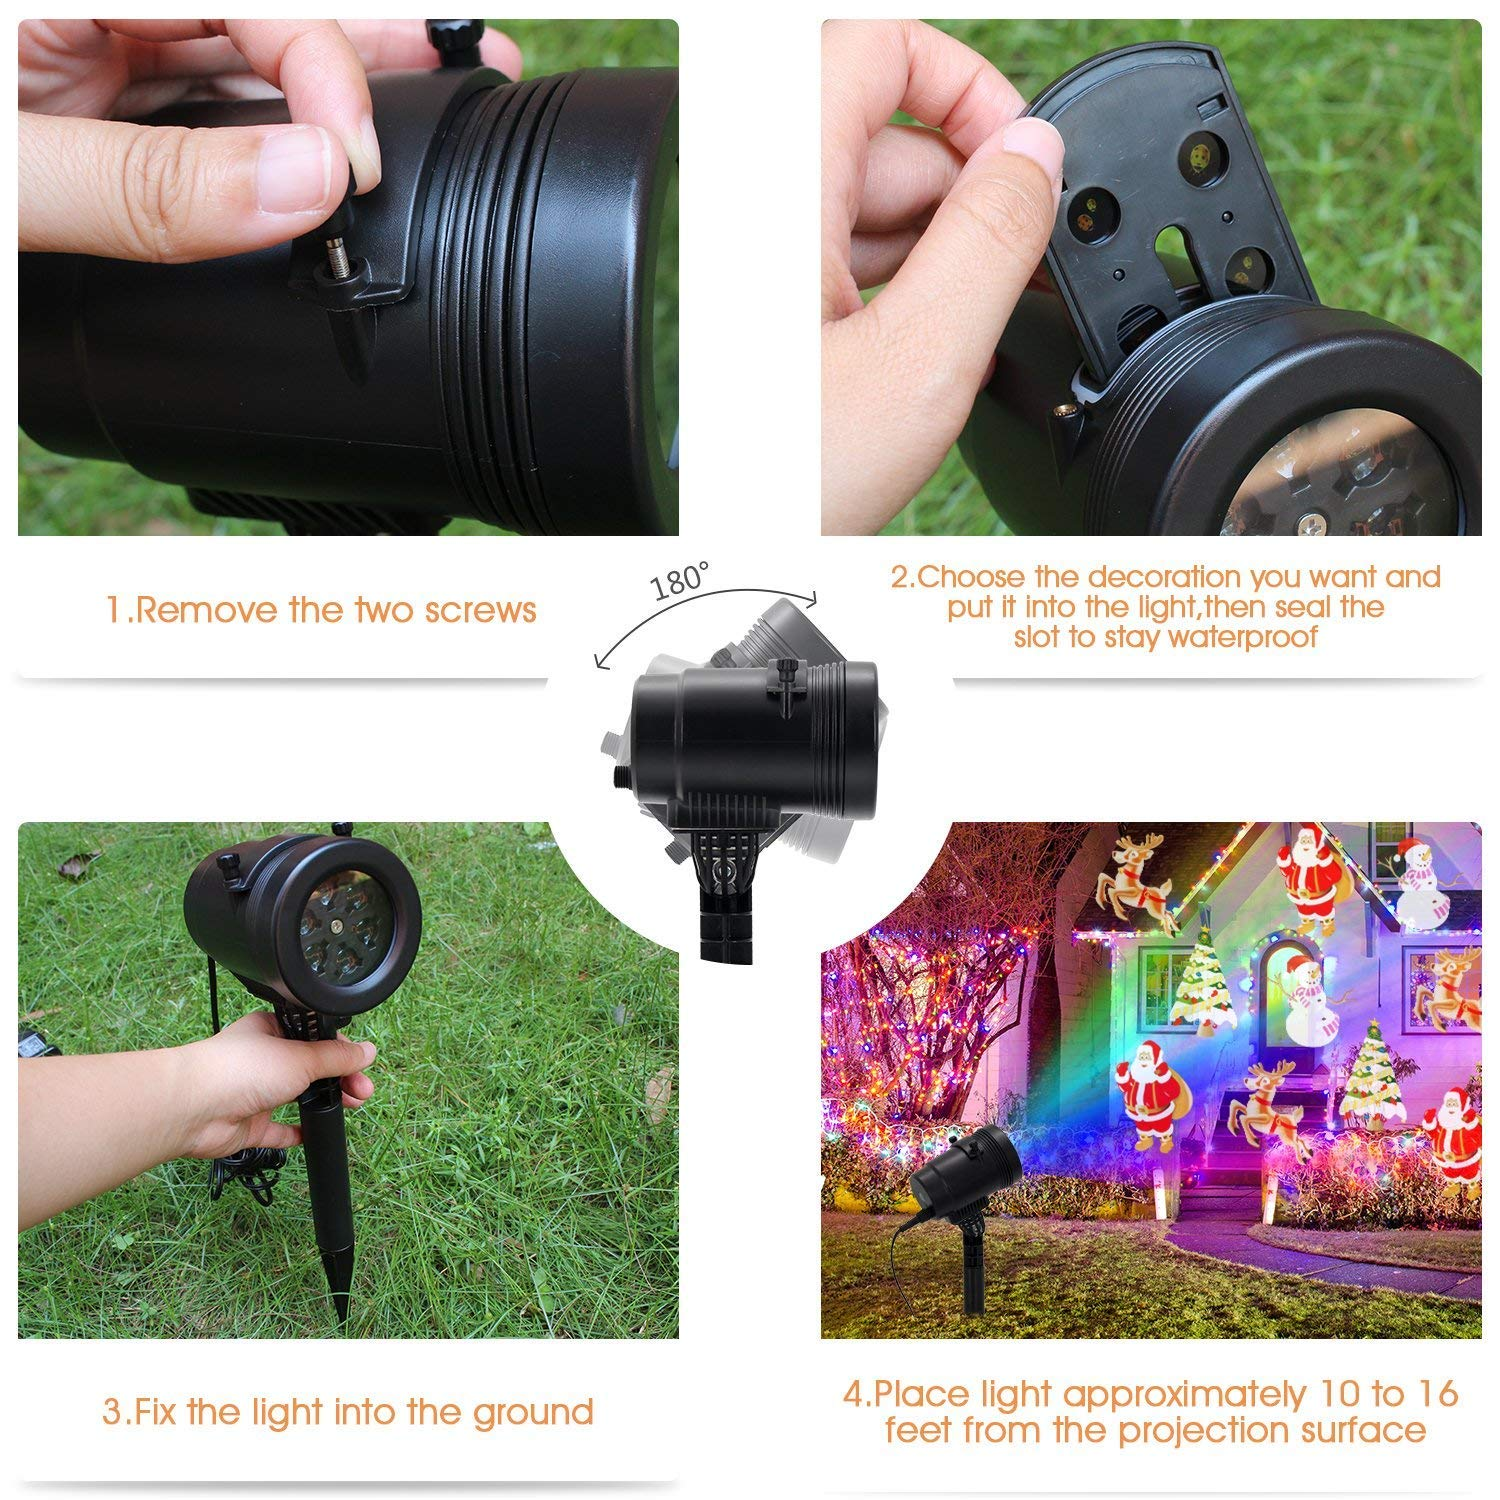 Christmas LED Projector Light, Outdoor Waterproof High Brightness Light Show with 32ft Cable & Remote Control for Christmas, Party and Holiday Decorations (16 Patterns) by Tunnkit (Image #6)